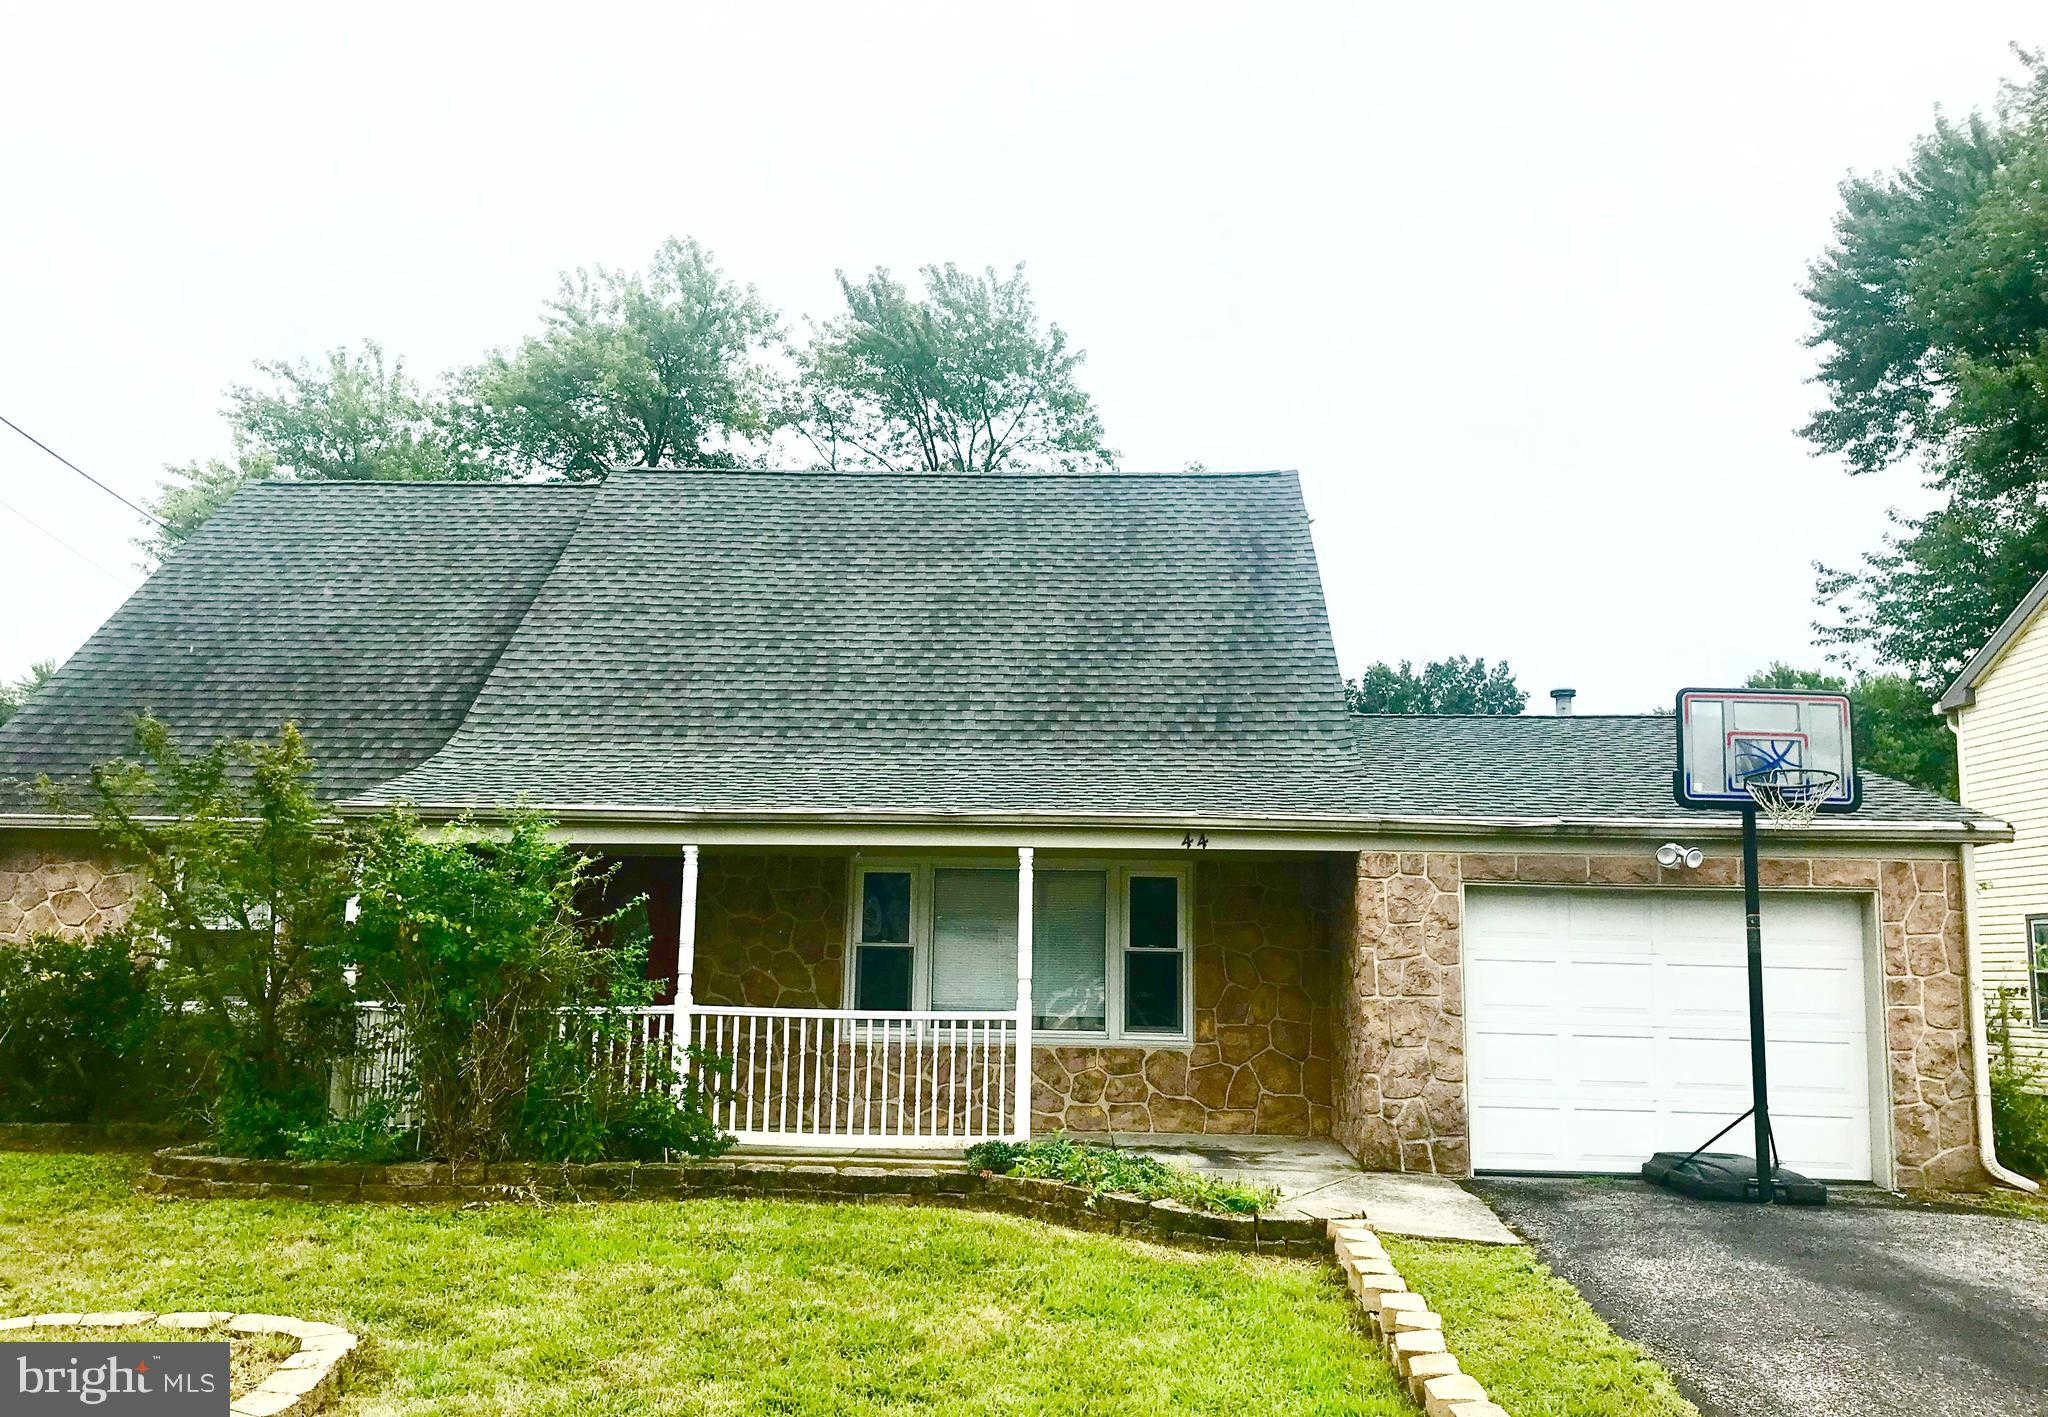 44 Globe Lane, Willingboro, NJ 08046 now has a new price of $153,500!